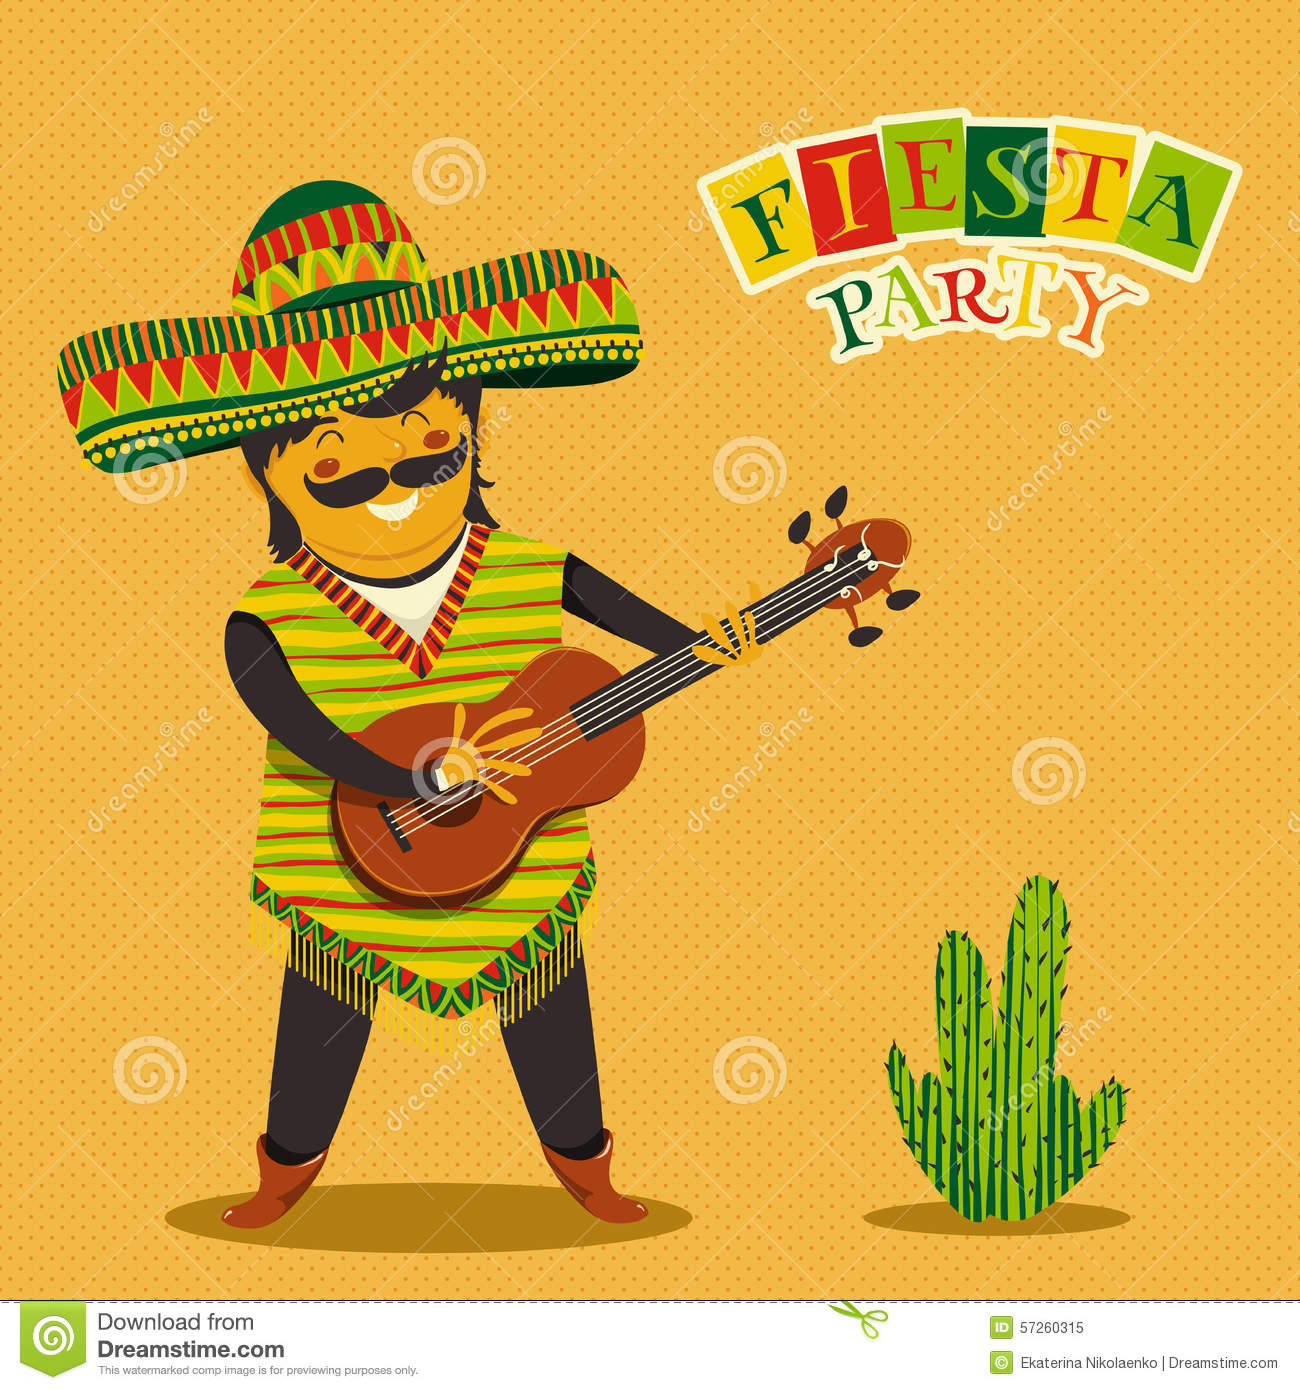 Mexican Fiesta Party Invitation With Mexican Man Playing The